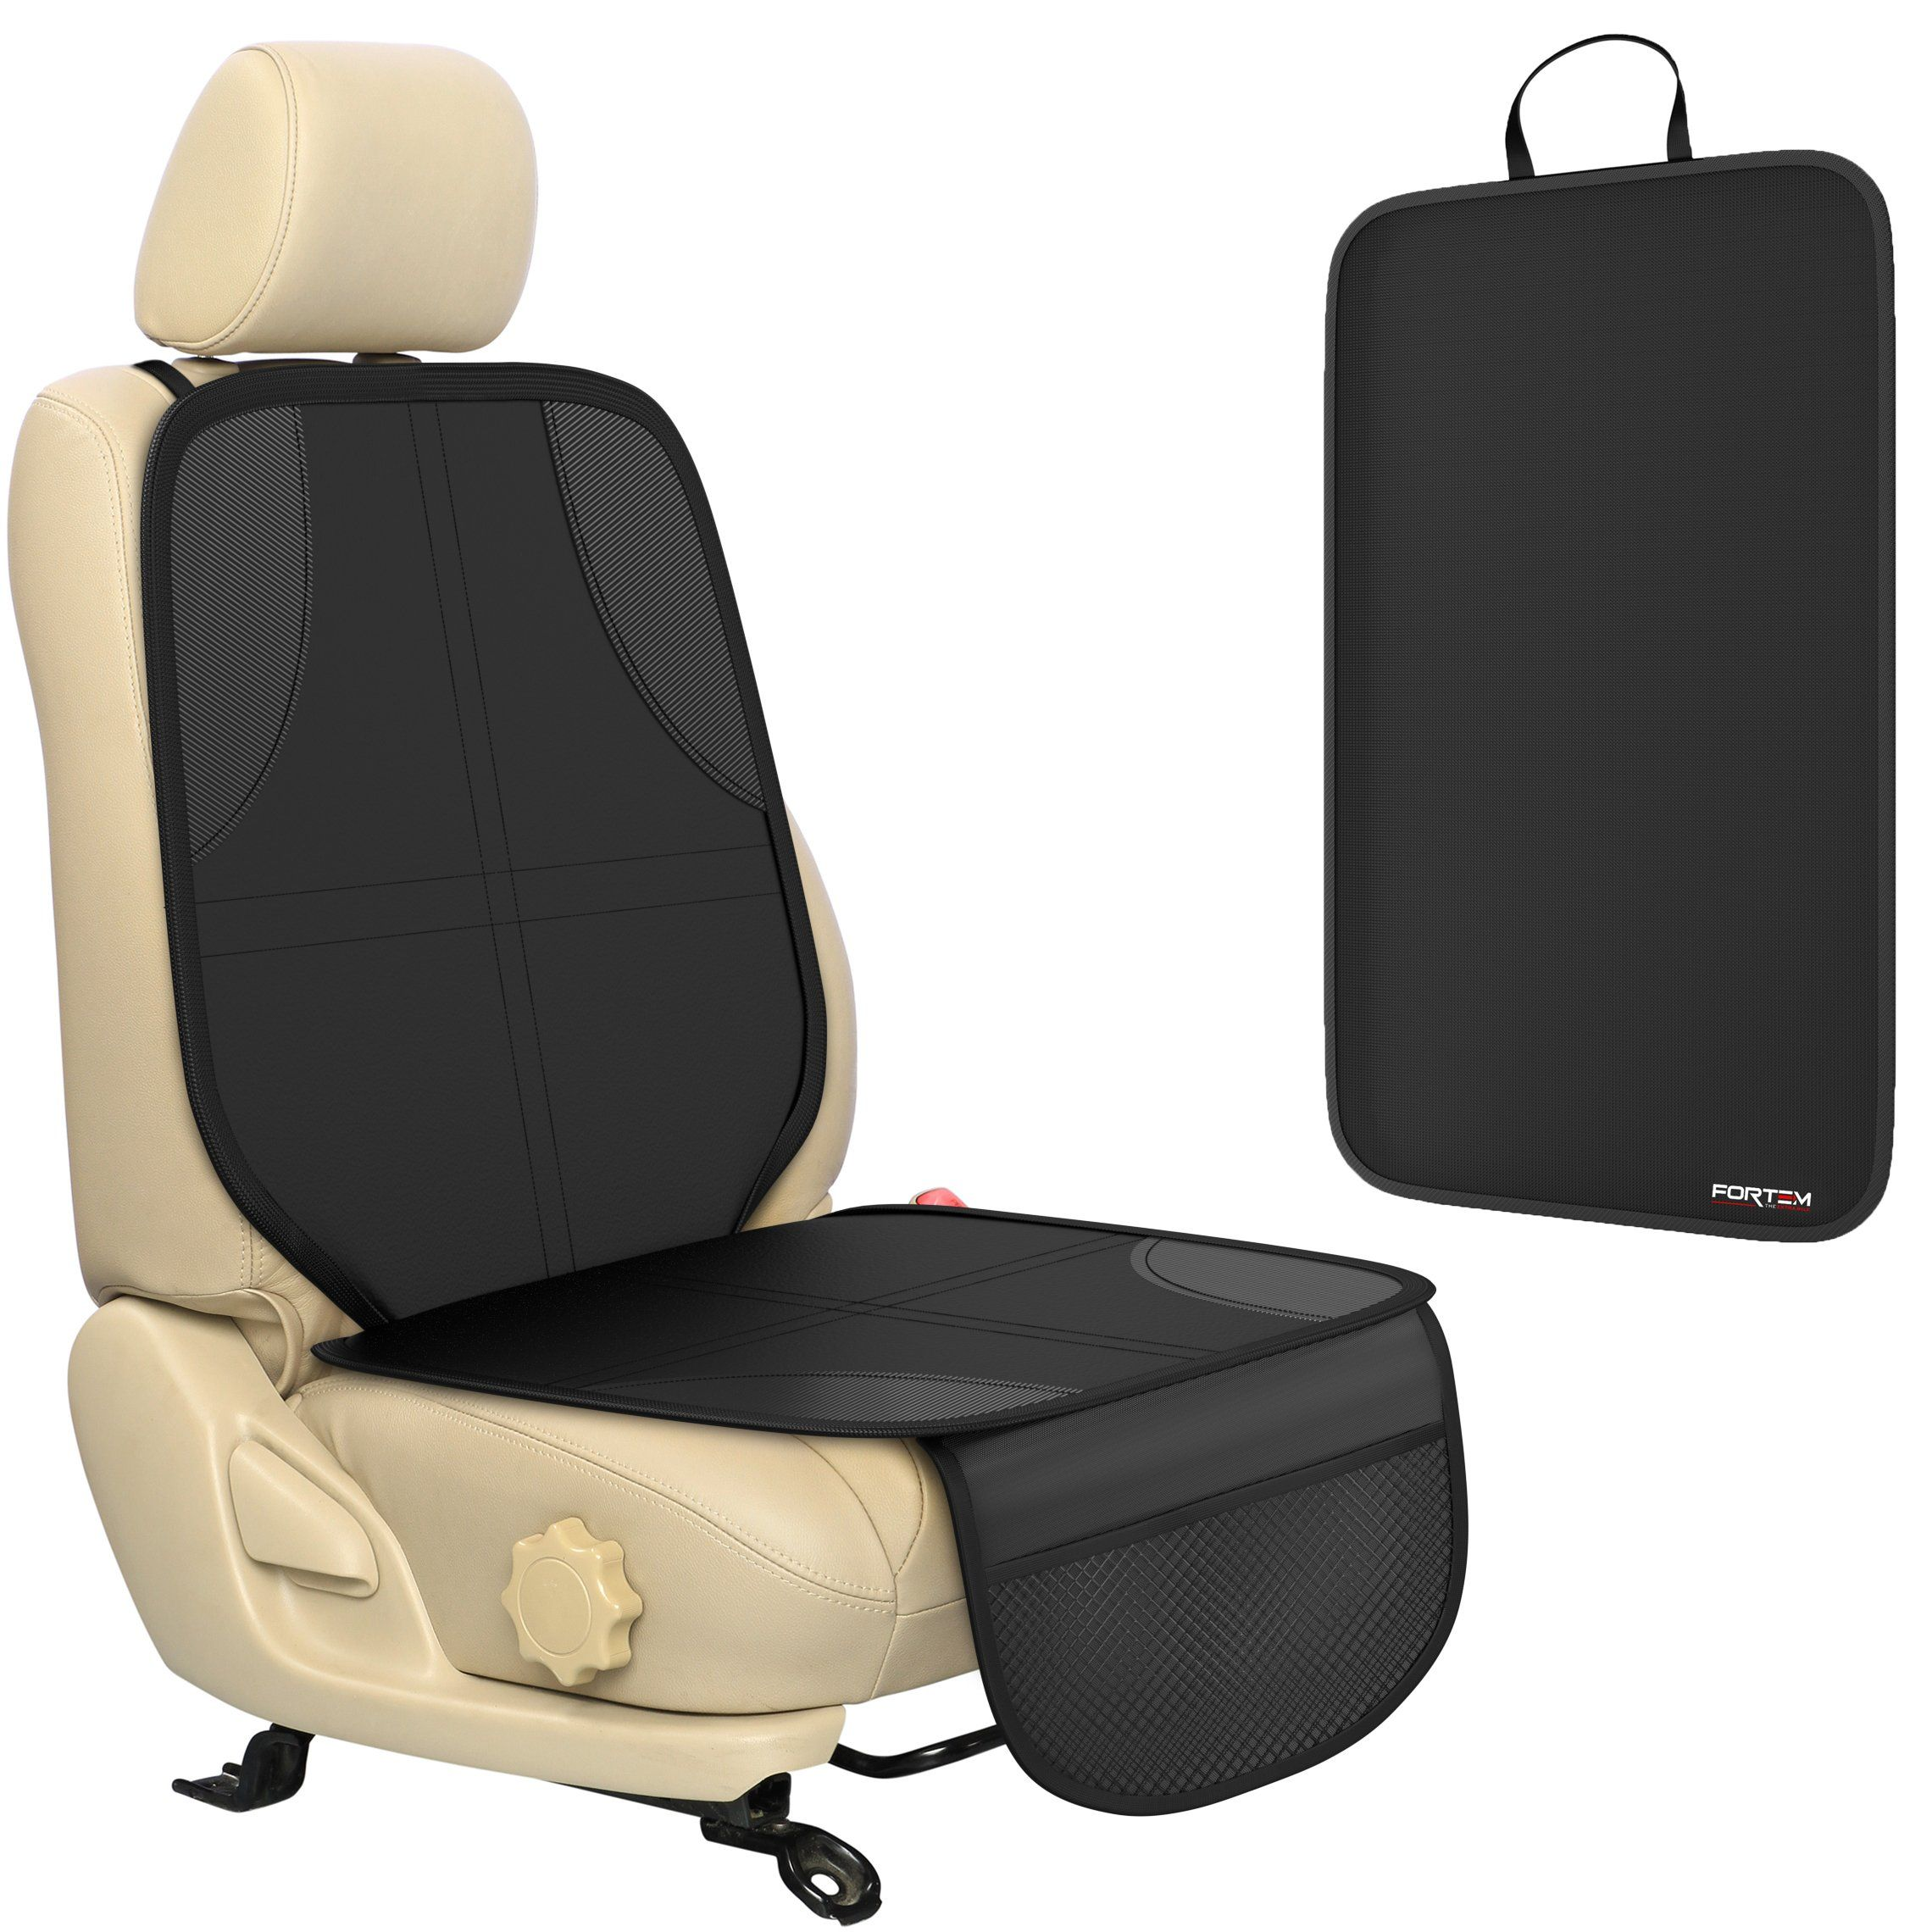 Premium Seat Cover For Baby Toddler Car Seats By FORTEM